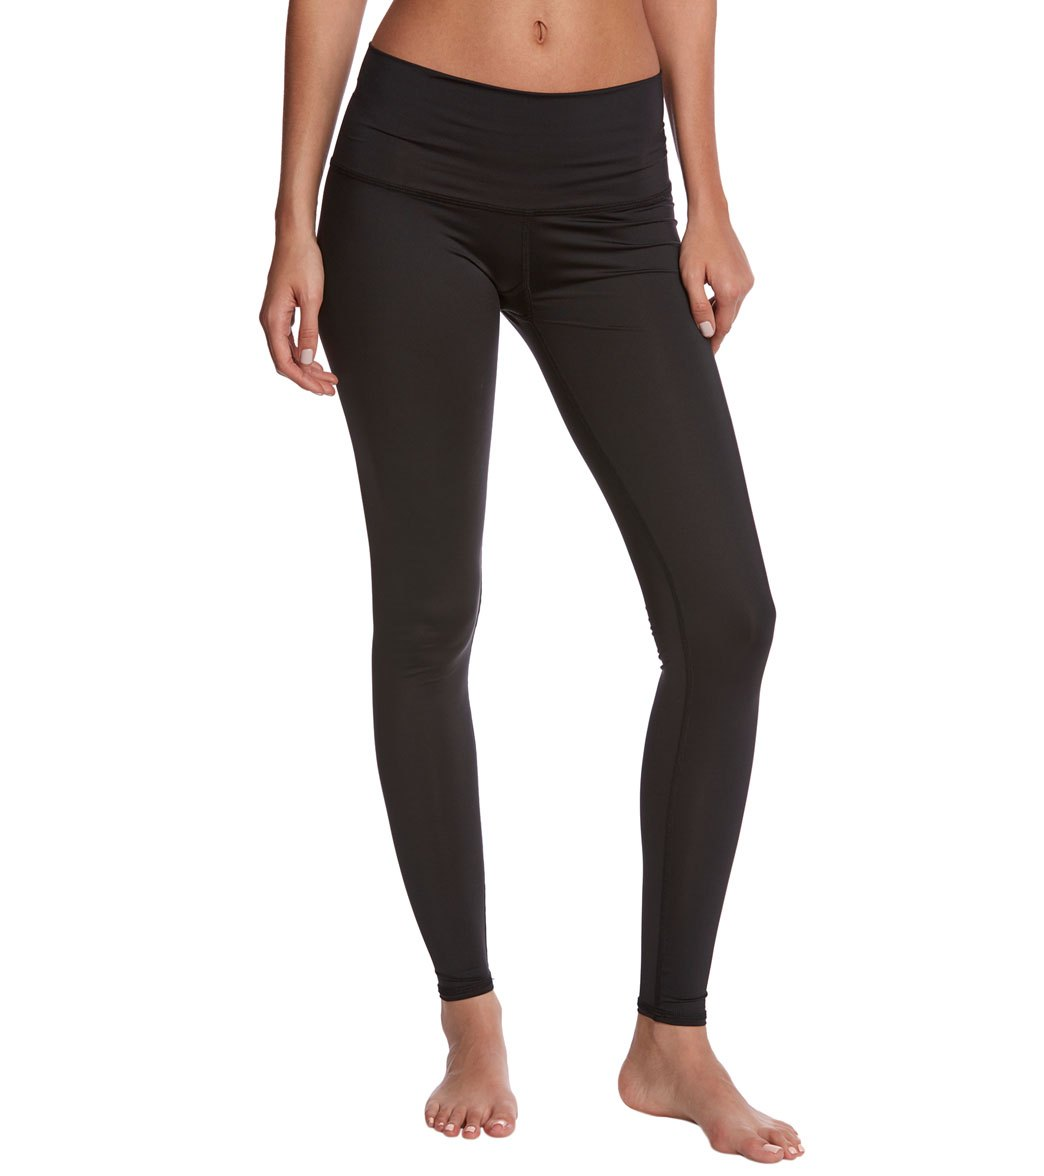 aa01b4fc10c14 Teeki Solid Black Hot Yoga Pants at YogaOutlet.com - Free Shipping